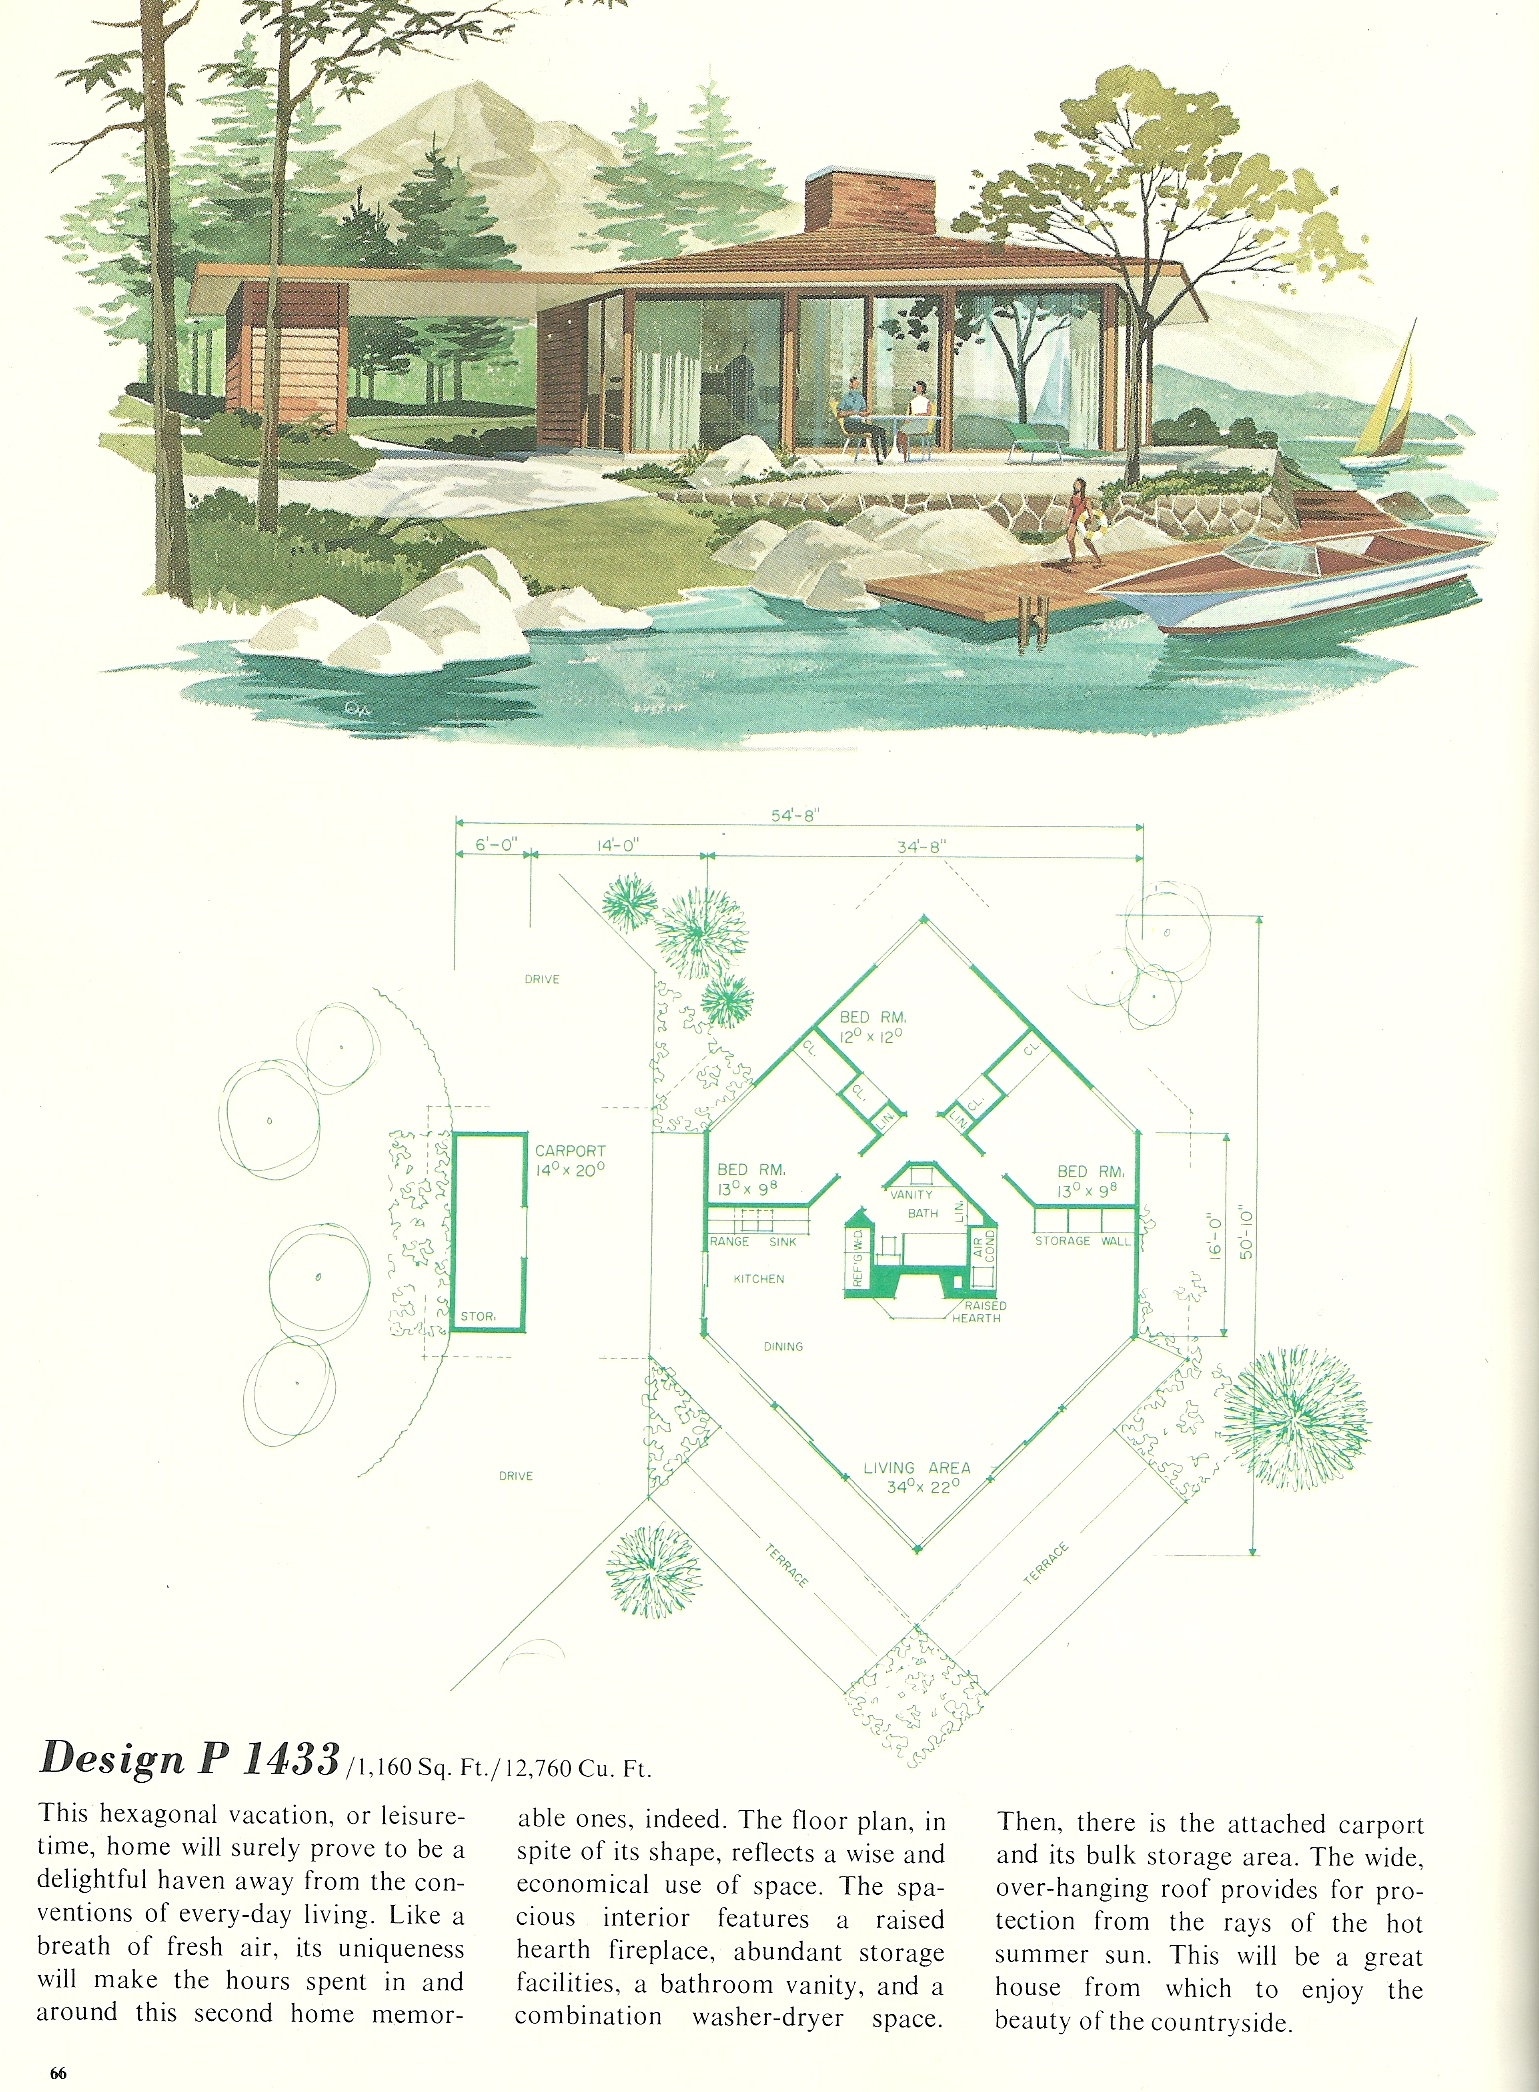 Tiny Home Designs: Vintage Vacation Home Plans 1433